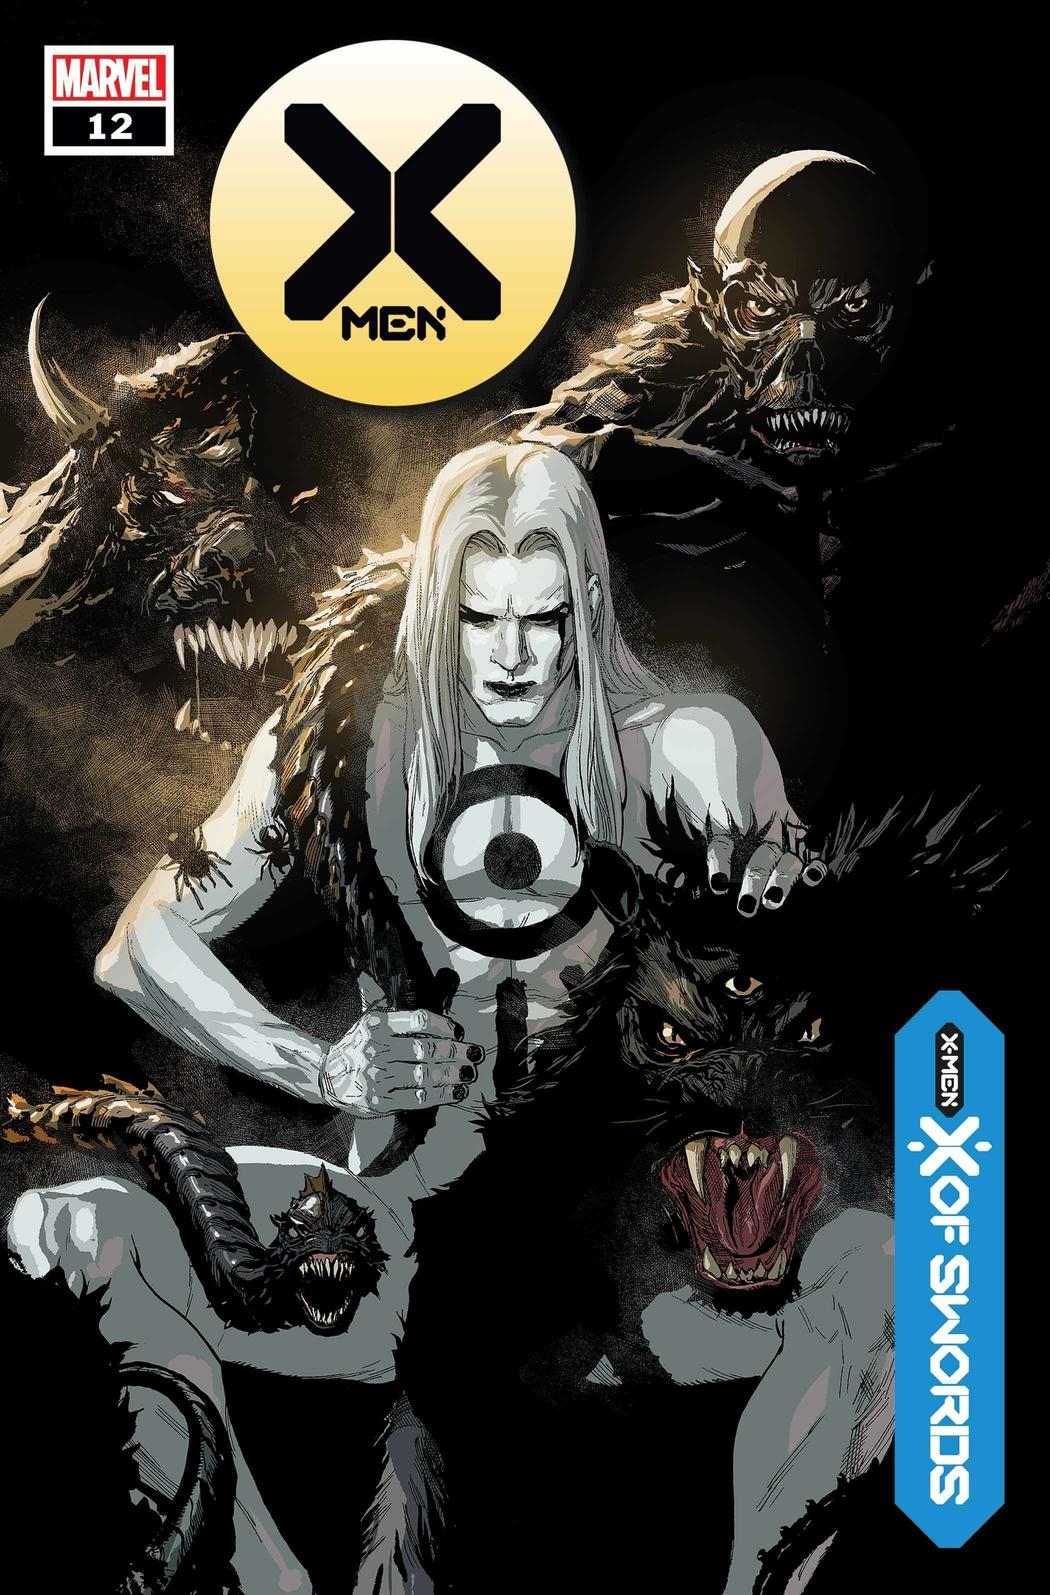 X-MEN #12 WRITTEN BYJONATHAN HICKMAN, ART AND COVER BYLEINIL FRANCIS YU